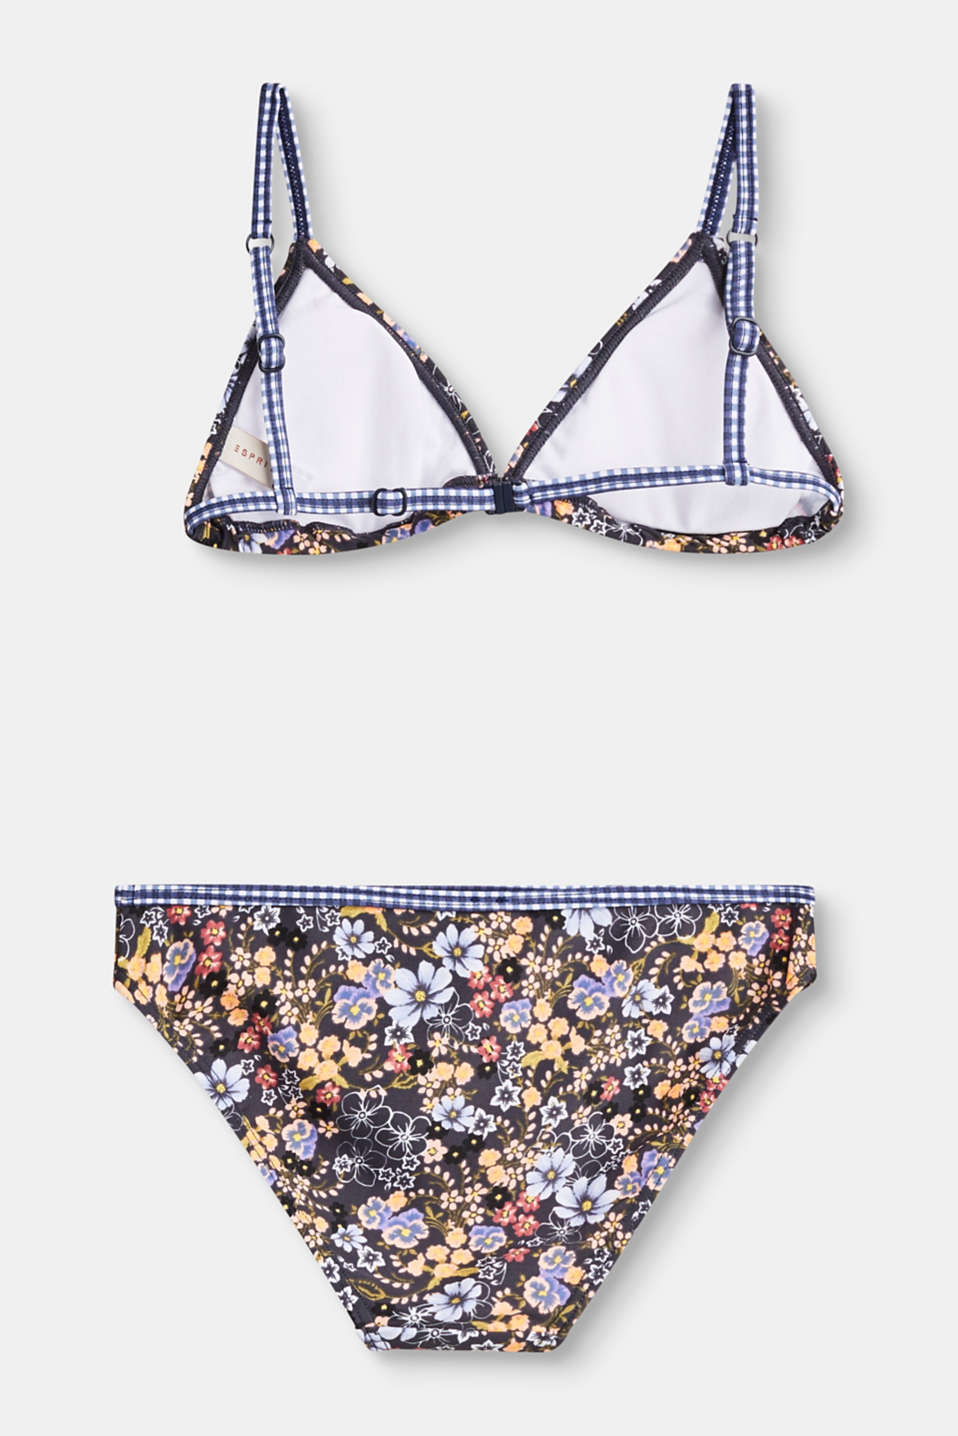 Triangle top bikini with a floral print